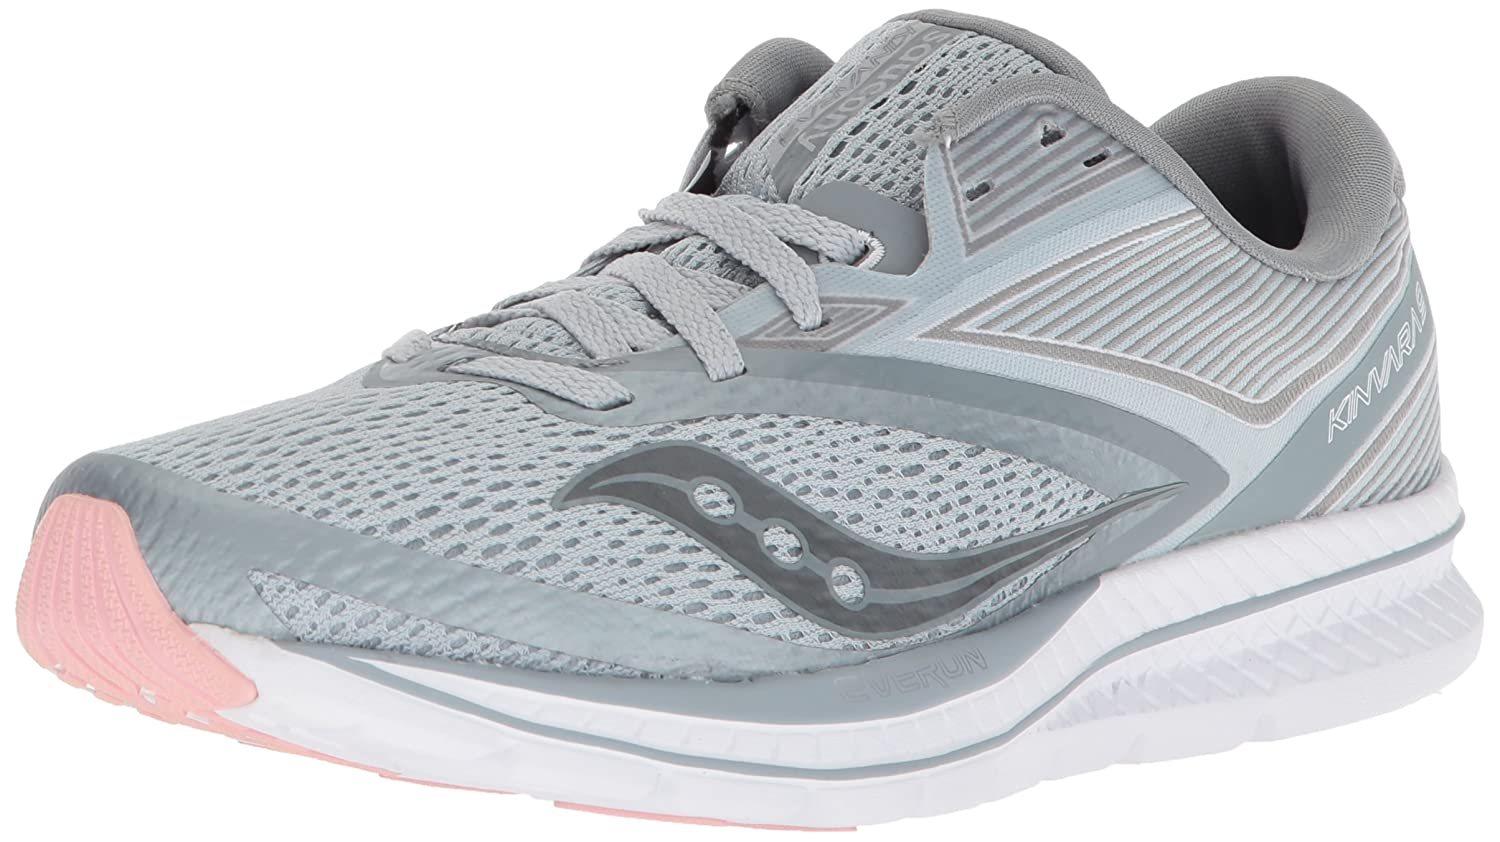 Saucony Women's Kinvara 9 Running Shoe B072JTVBN3 6 B(M) US|Grey/White